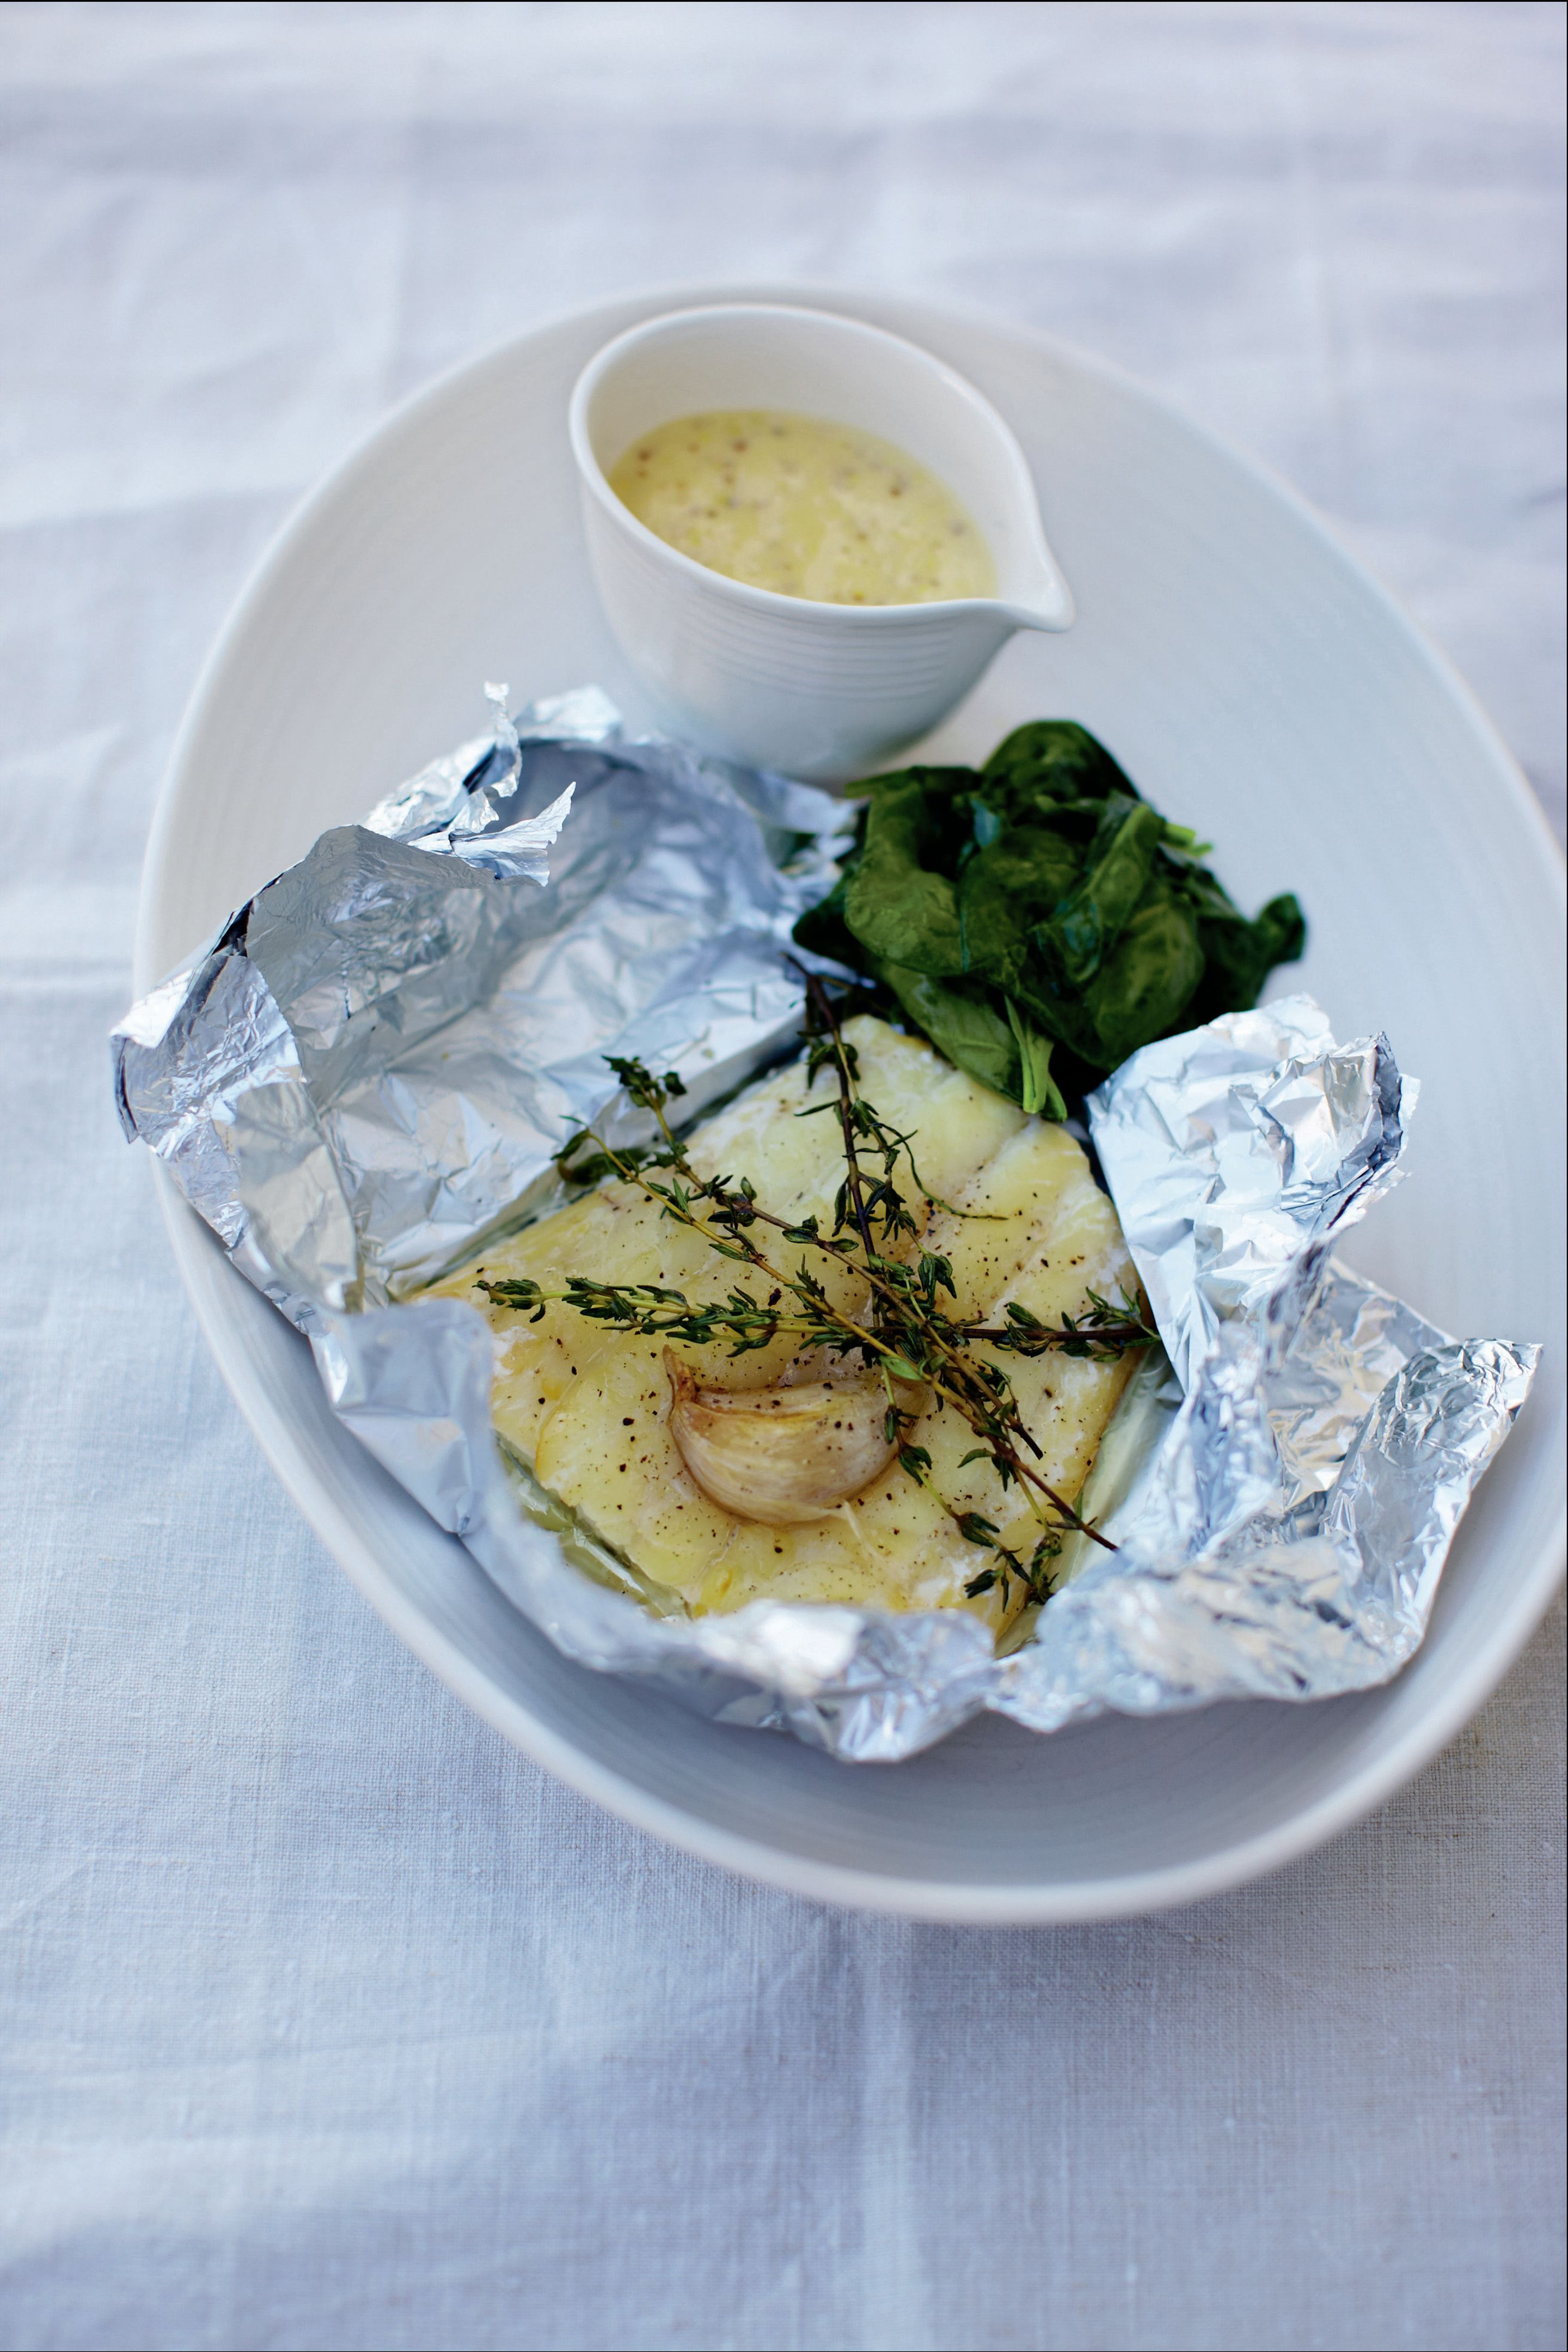 Smoked haddock with mustard sauce and sea spinach